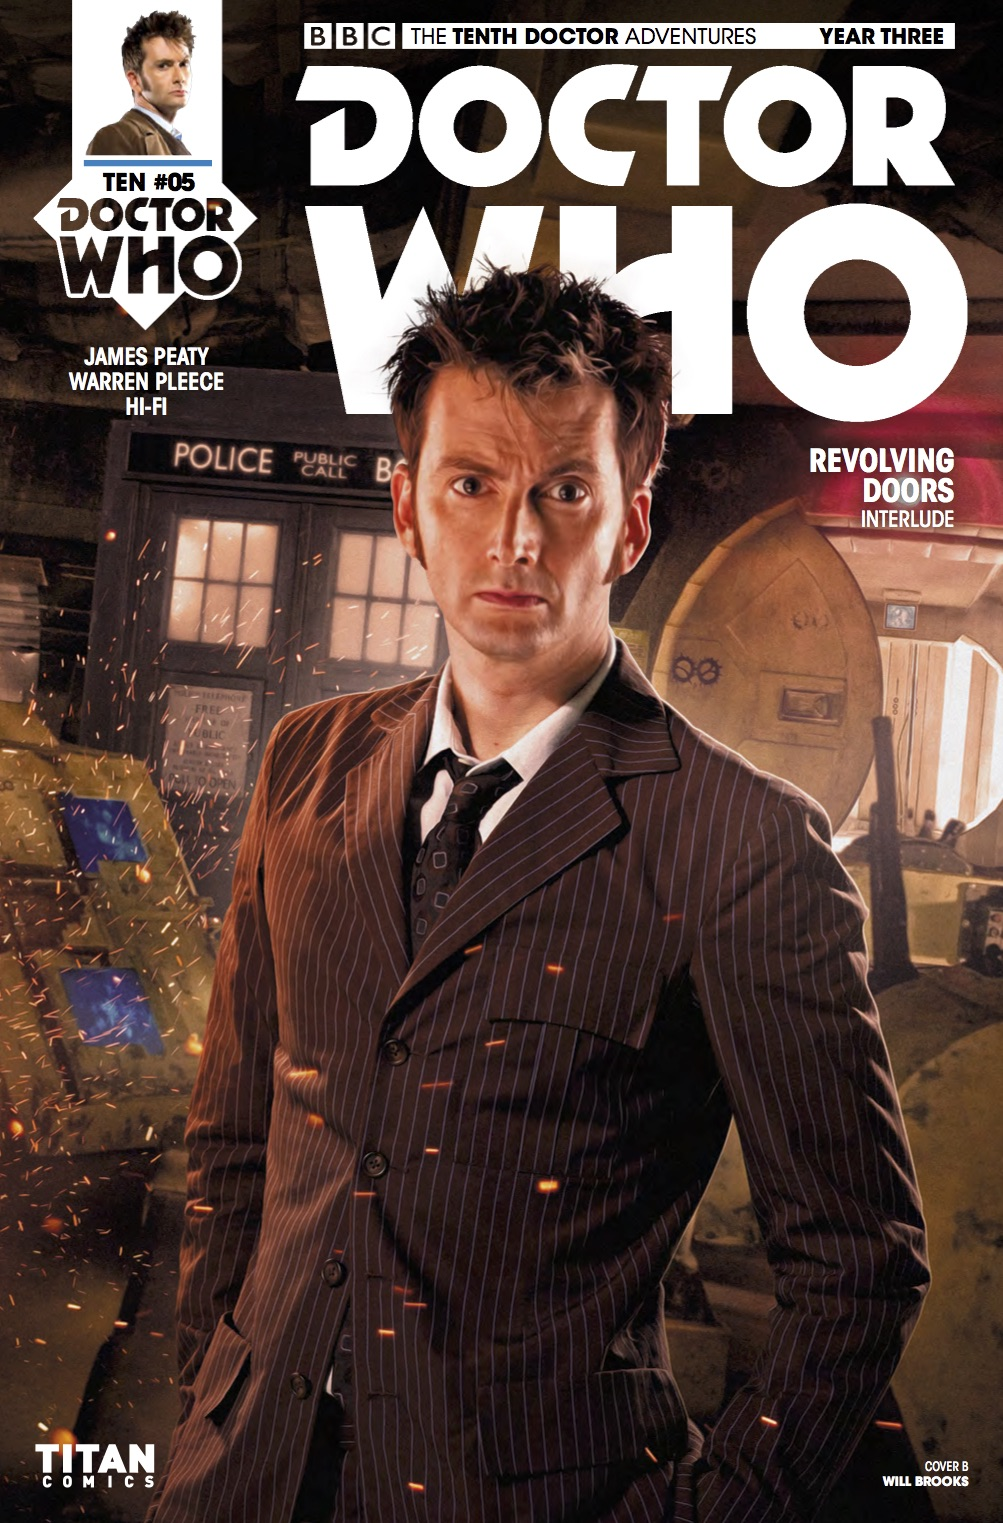 TENTH_DOCTOR 3.5 Cover B (Credit: Titan / Will Brooks)